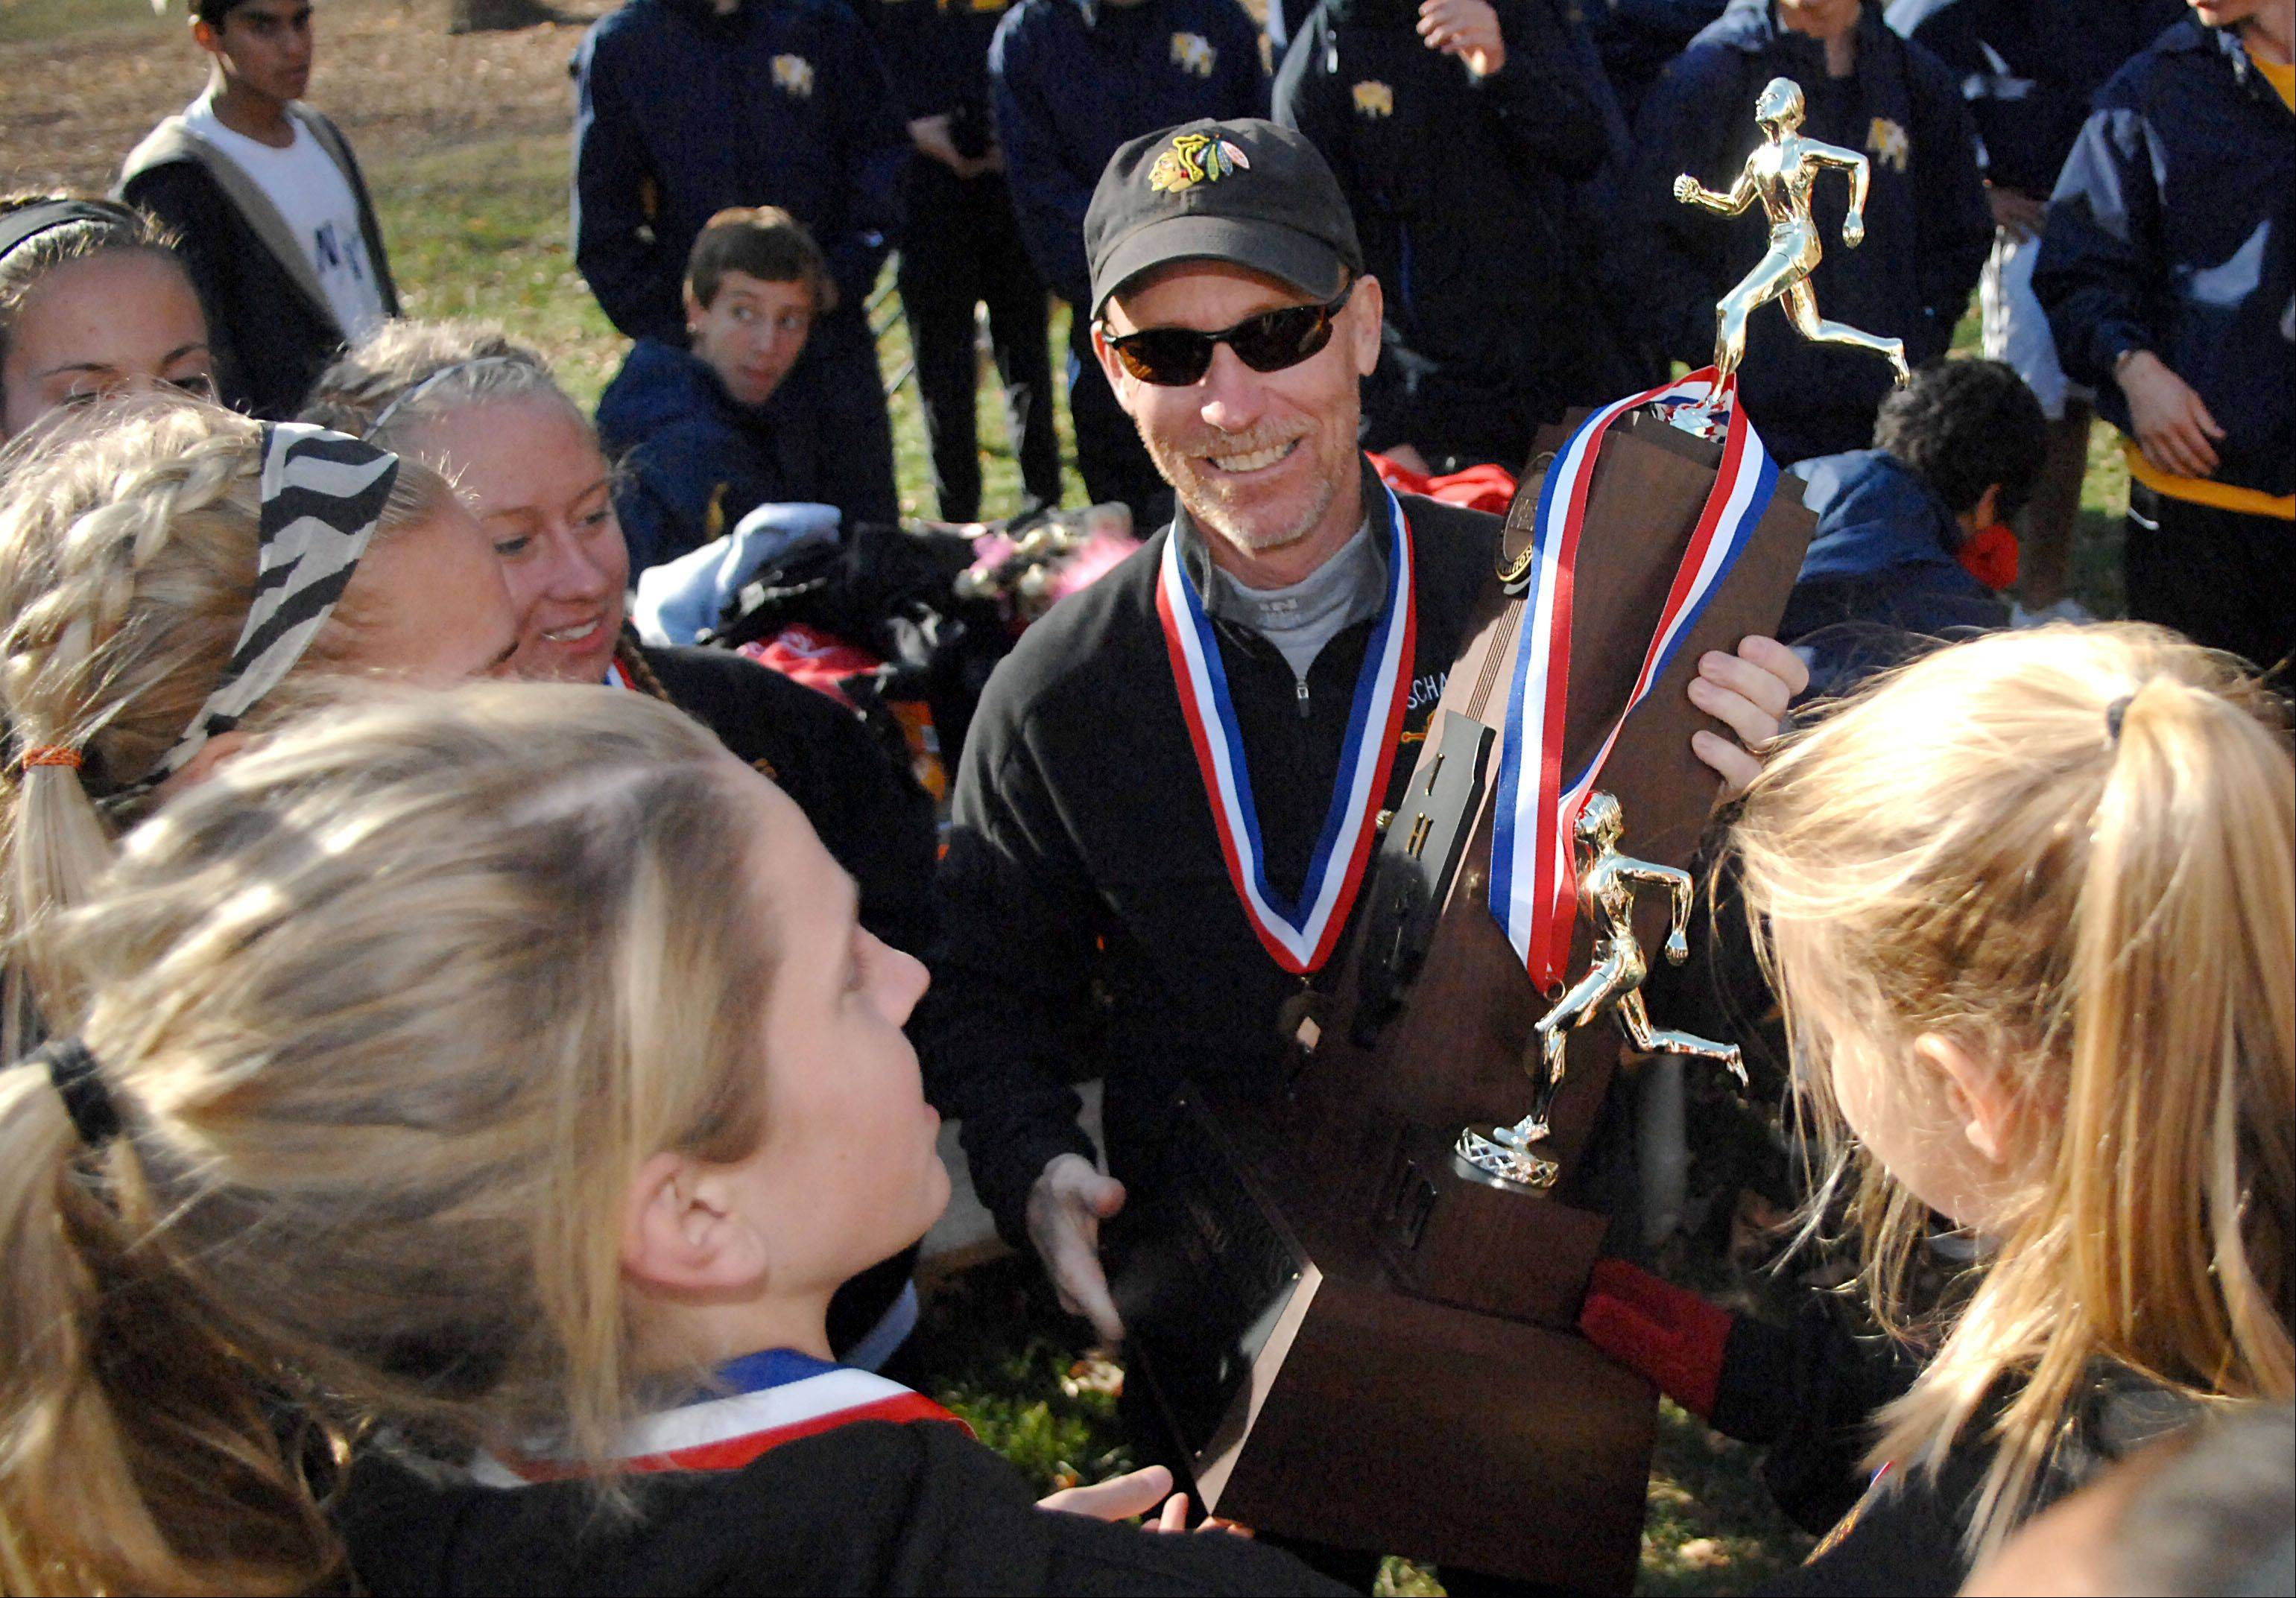 Jon Macnider smiles widely as the Schaumburg girls hand him the state championship trophy in November, 2010. Macnider came through like a champion after undergoing balloon kyphoplasty to treat a spinal fracture.